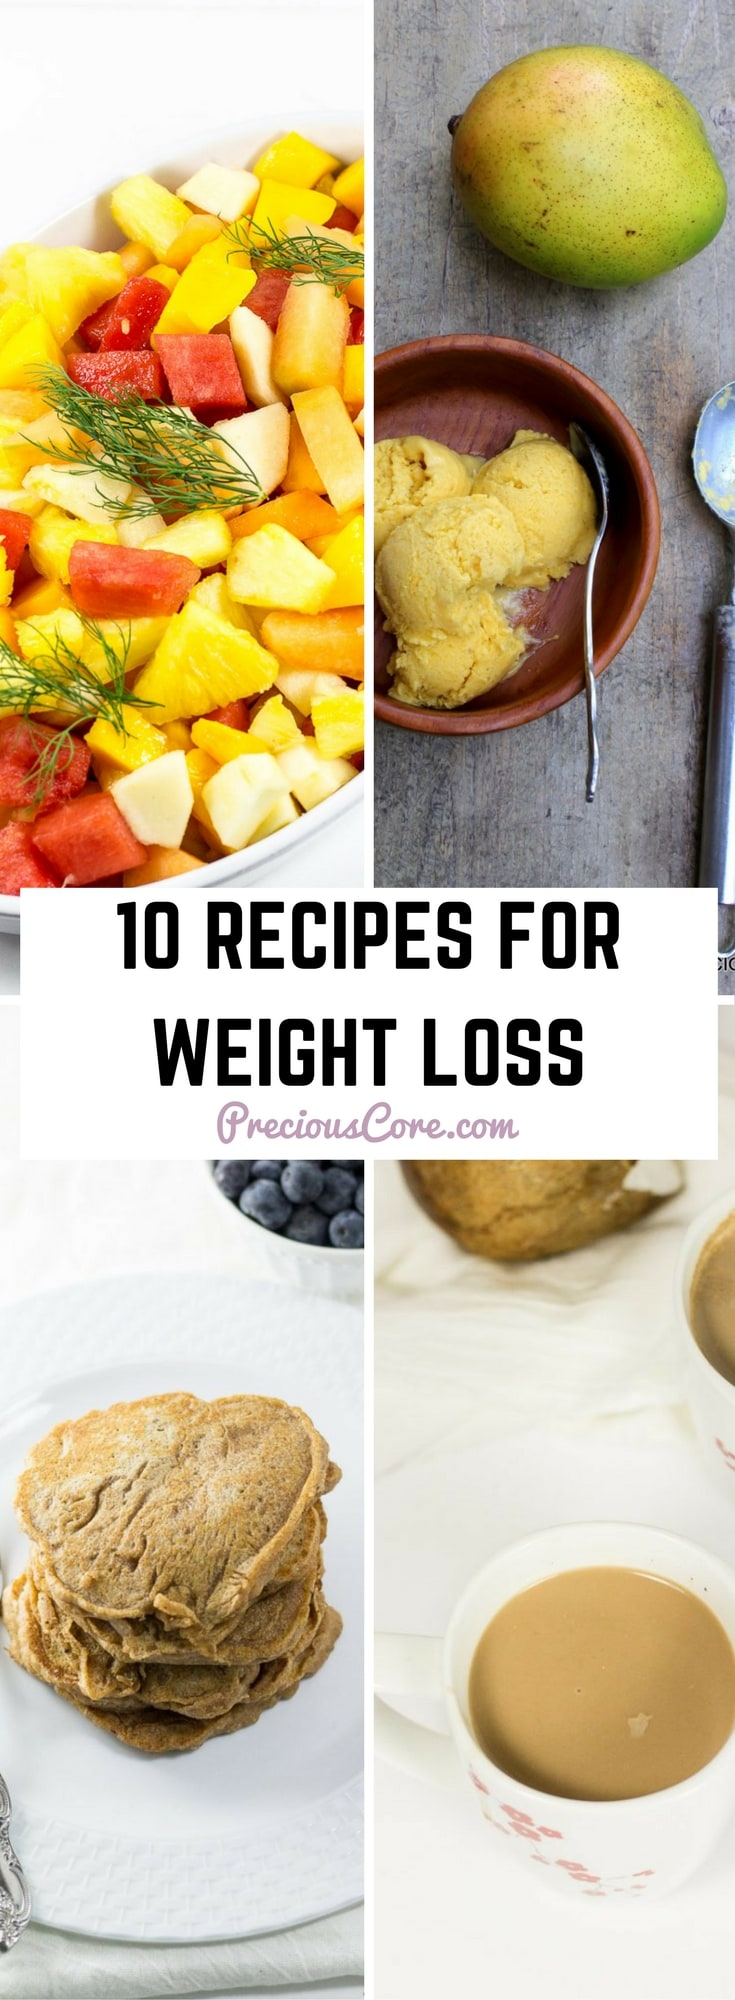 From dinner ideas to breakfast recipes and delicious drinks, here are 10 recipes to help you achieve your weight loss goals. Get all the recipes on Precious Core. #Dinner #Healthy #recipesforweightloss #healthyrecipes #sugarfree #loseweight